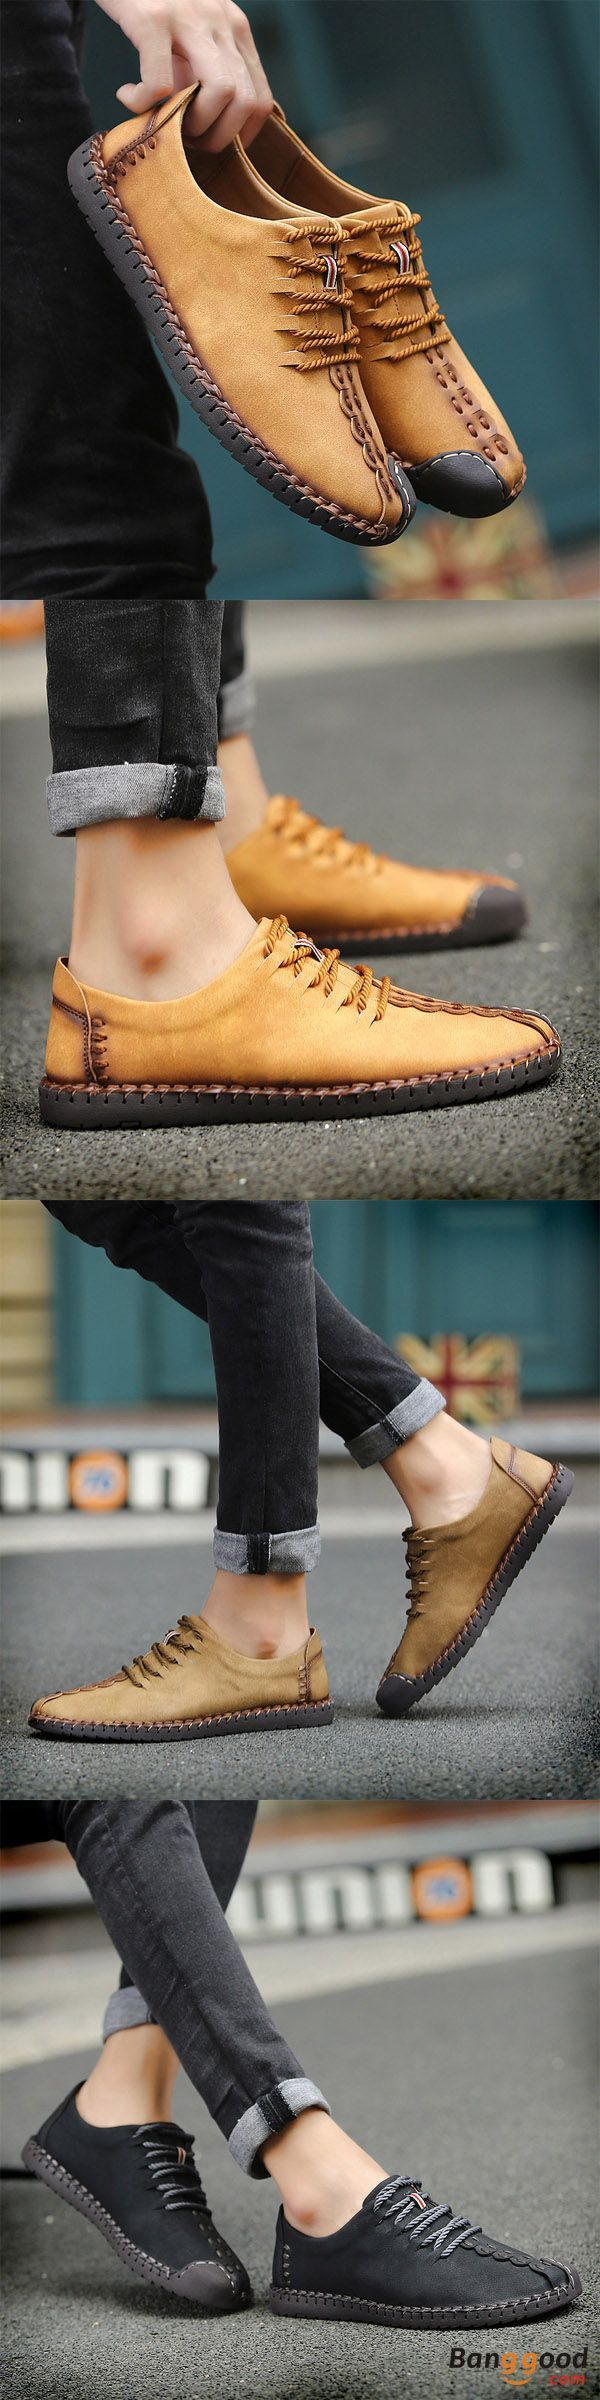 US$37.12+Free shipping. Men Shoes, Oxfords Shoes. Hand Stitching, Soft, Sole, Casual, Lace Up. Color: Black, Yellow, Khaki. Show your fashion style, shop now~